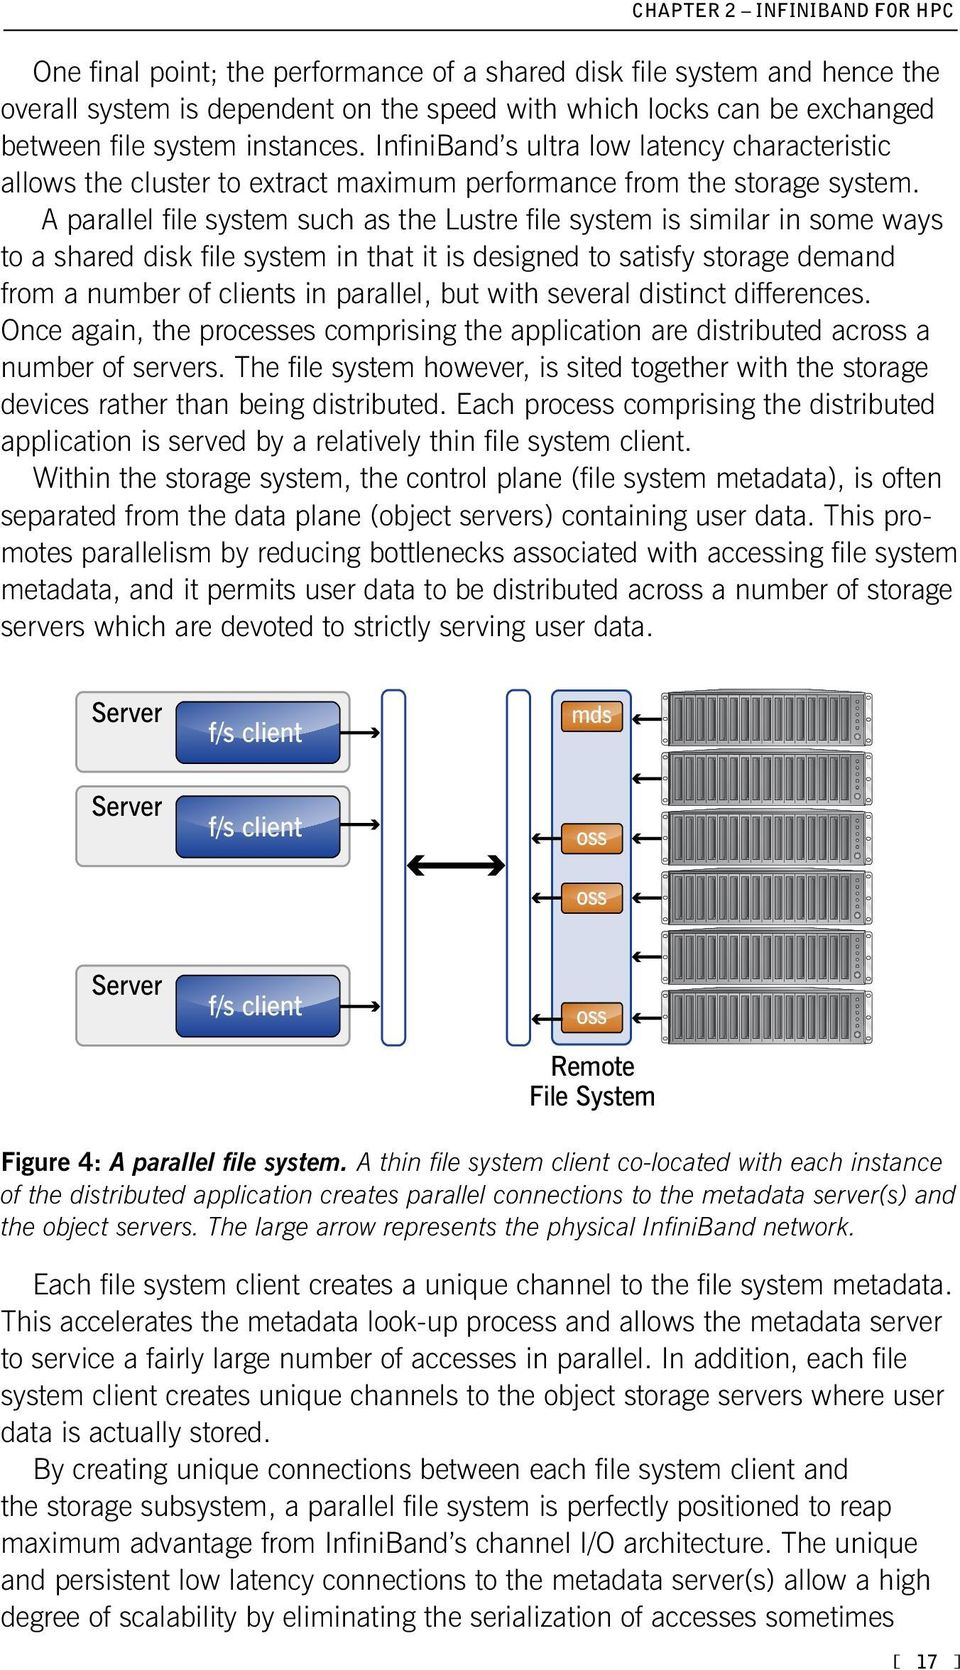 A parallel file system such as the Lustre file system is similar in some ways to a shared disk file system in that it is designed to satisfy storage demand from a number of clients in parallel, but